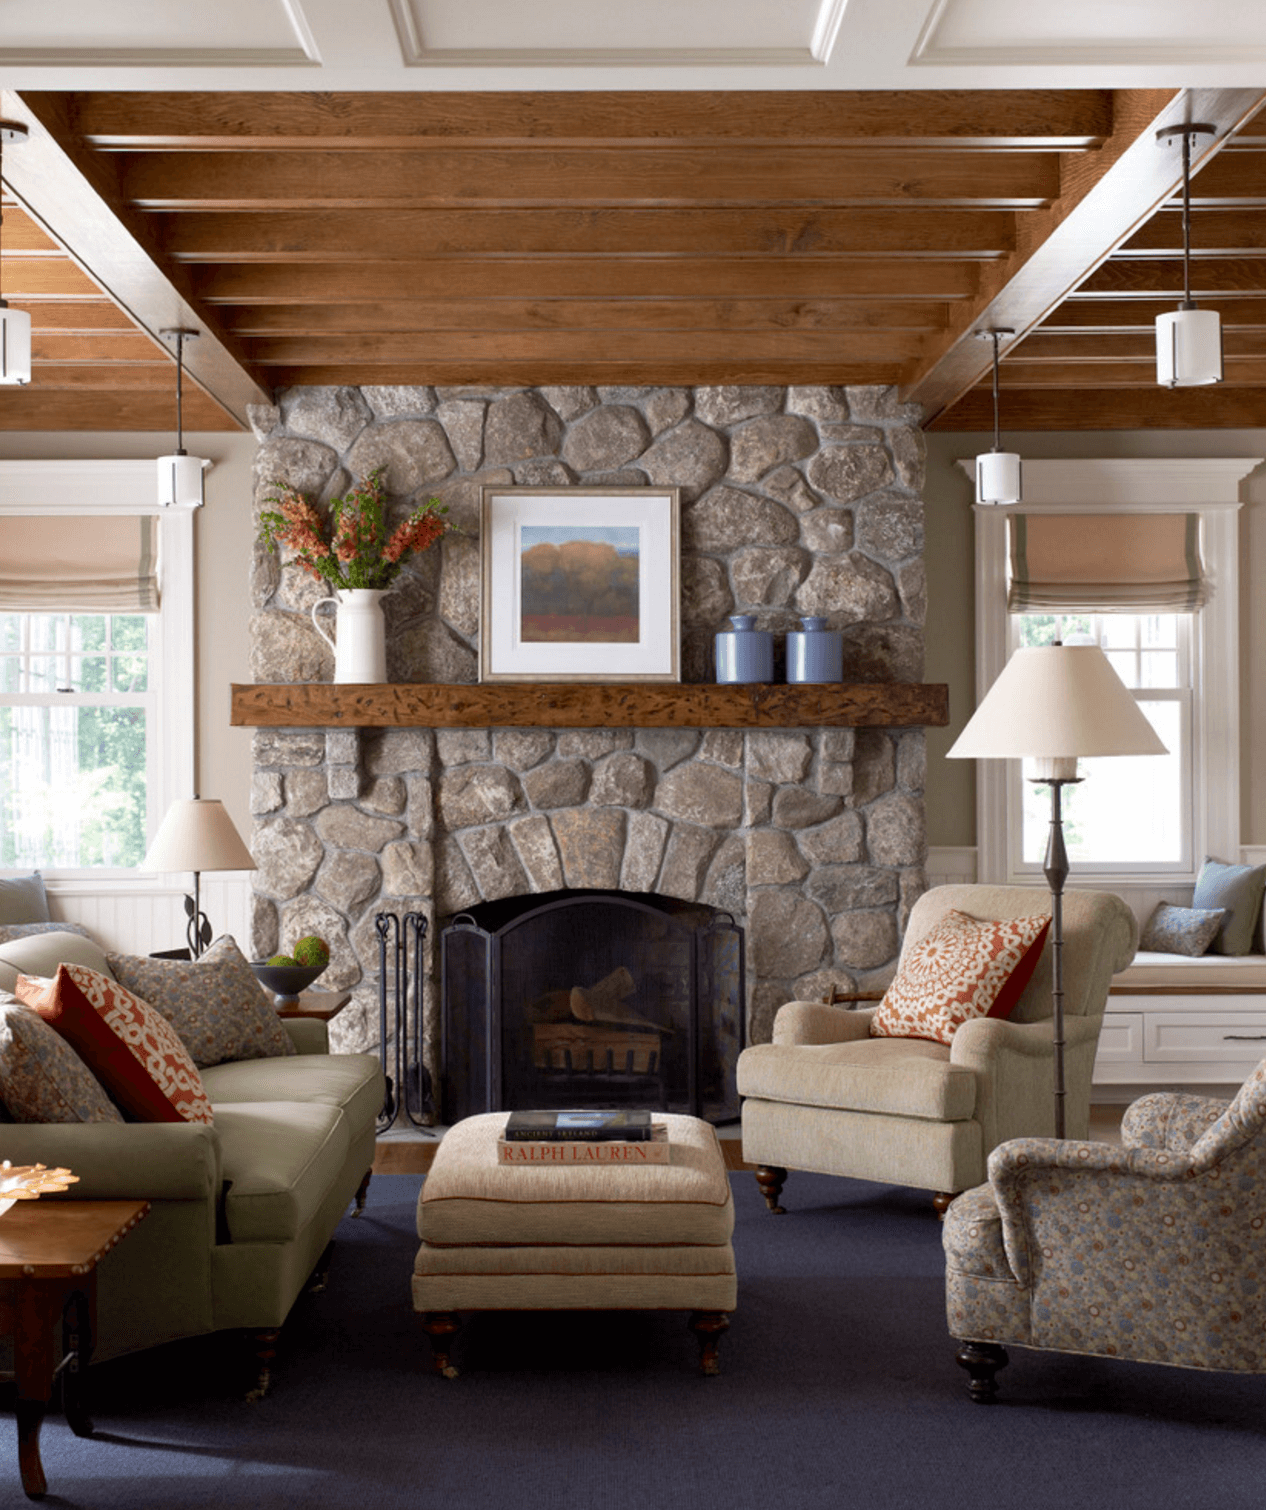 living room mantel interior design ideas blue and brown decorating freshome collect this idea country hearth